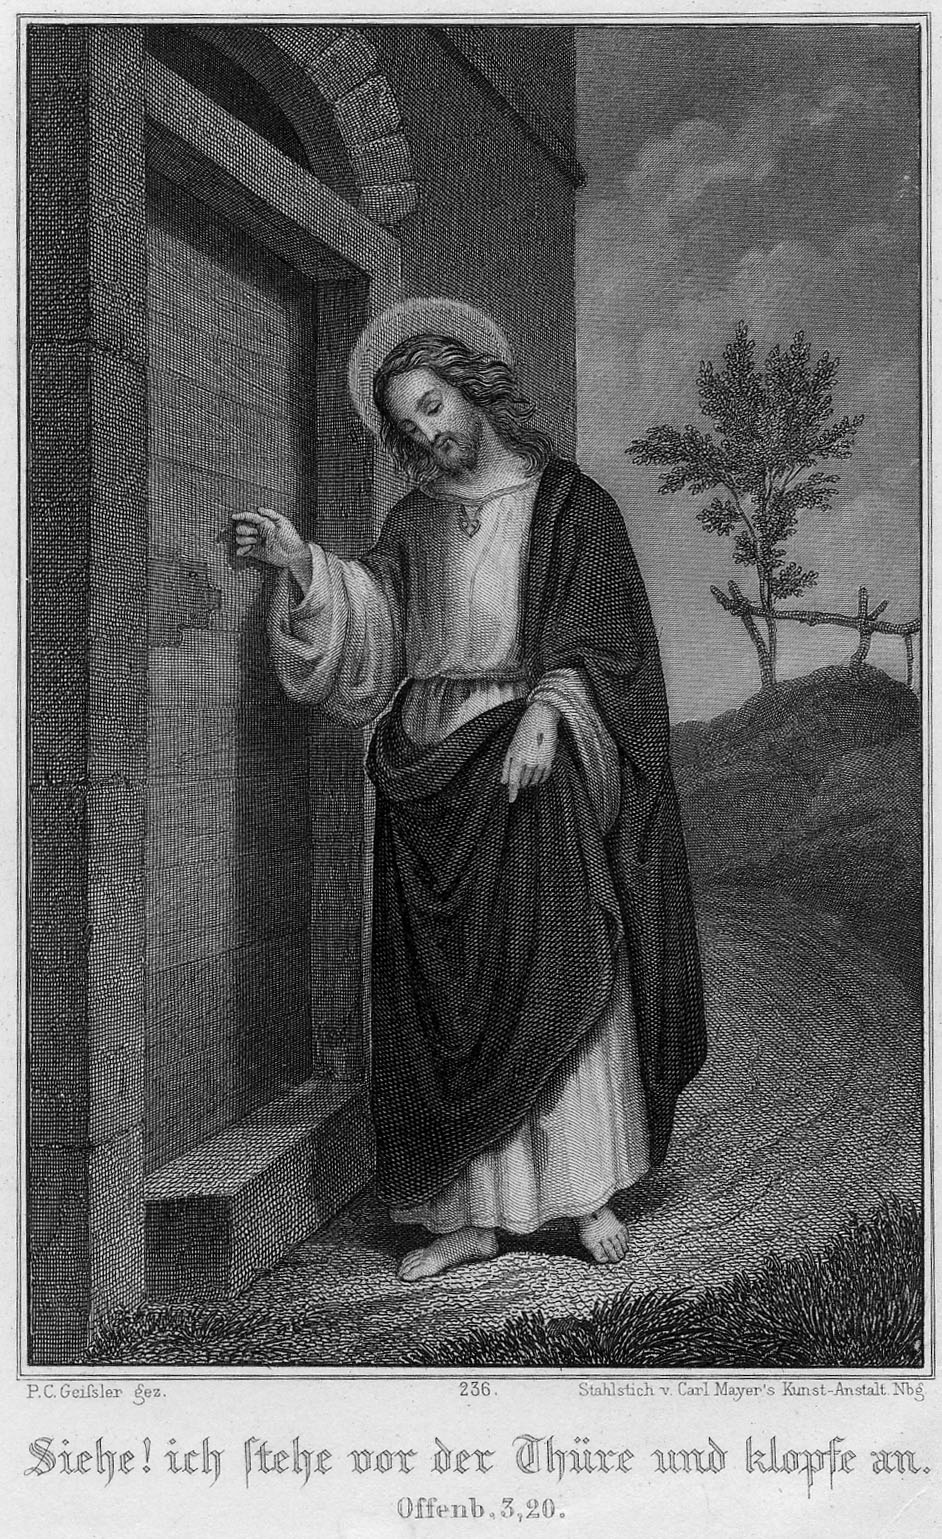 Jesus_Christ_knocking_at_the_door_001_-_German_steel_engraving.jpg